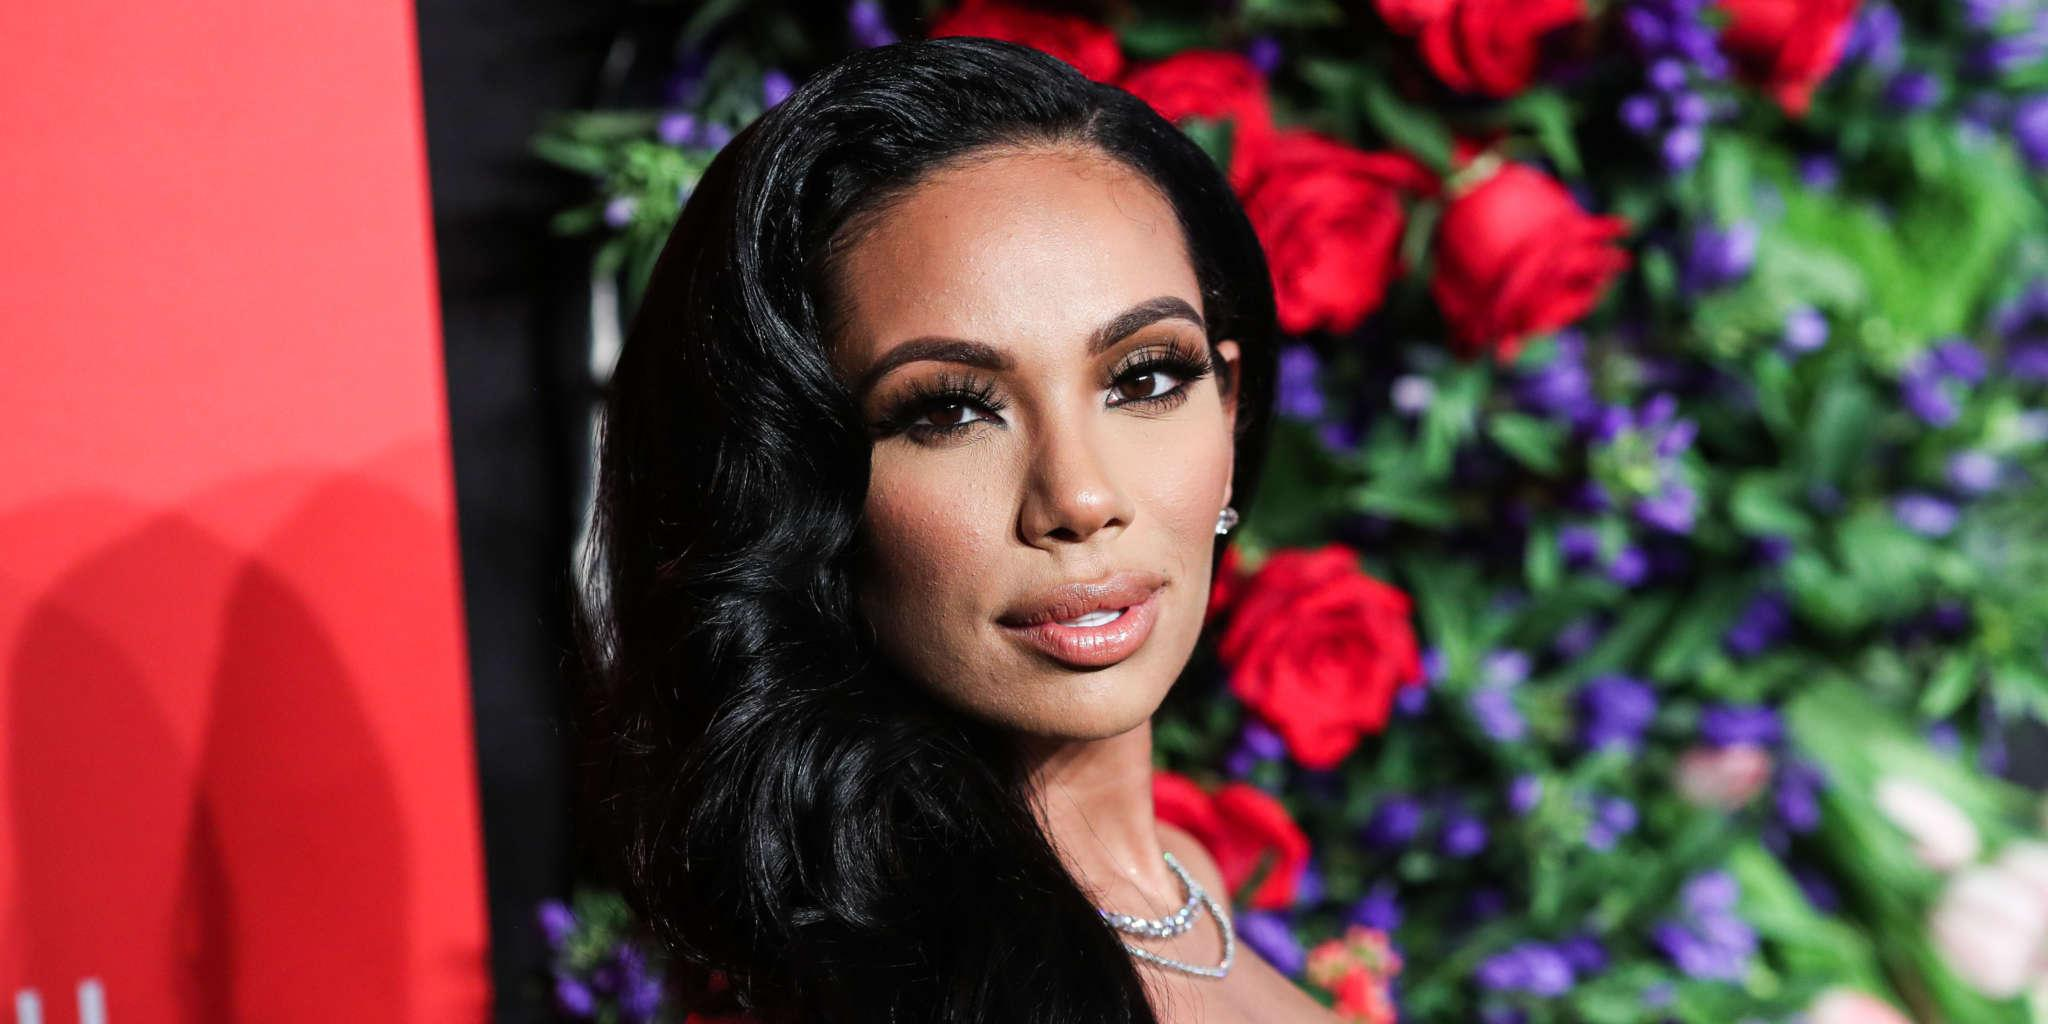 Erica Mena Tells Fans That Her Baby Girl Is In Position - Fans Wish Her A Safe Delivery